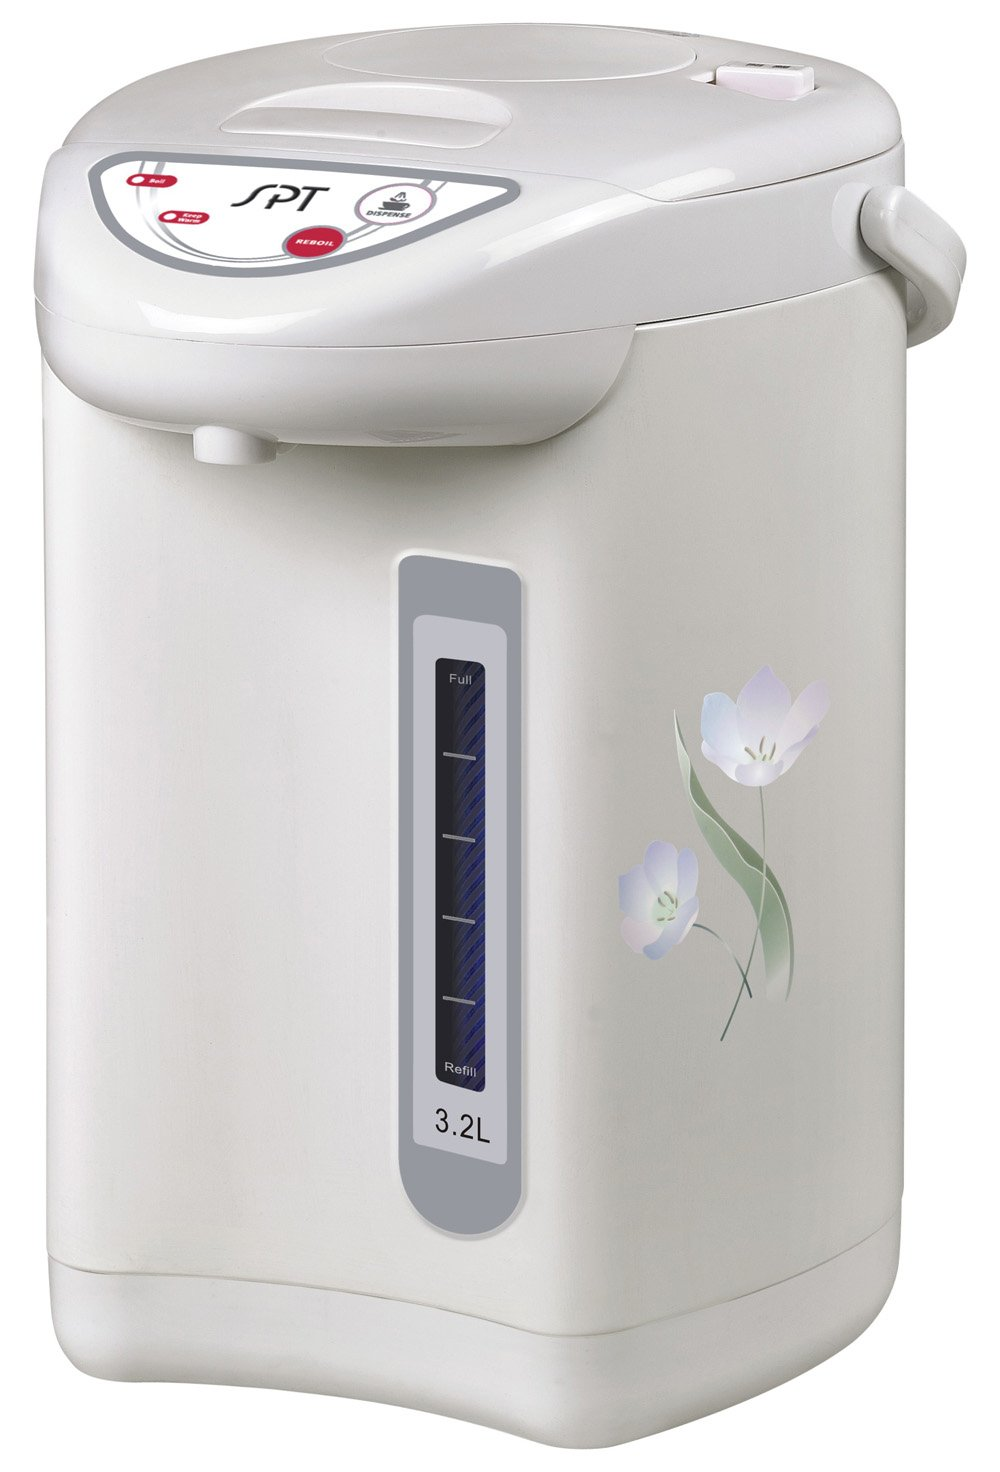 SPT SP-3201 Hot Water Dispenser with Dual-Pump System (3.2L), 10.2 x 10.2 x 13.4 Inch, Off Off White